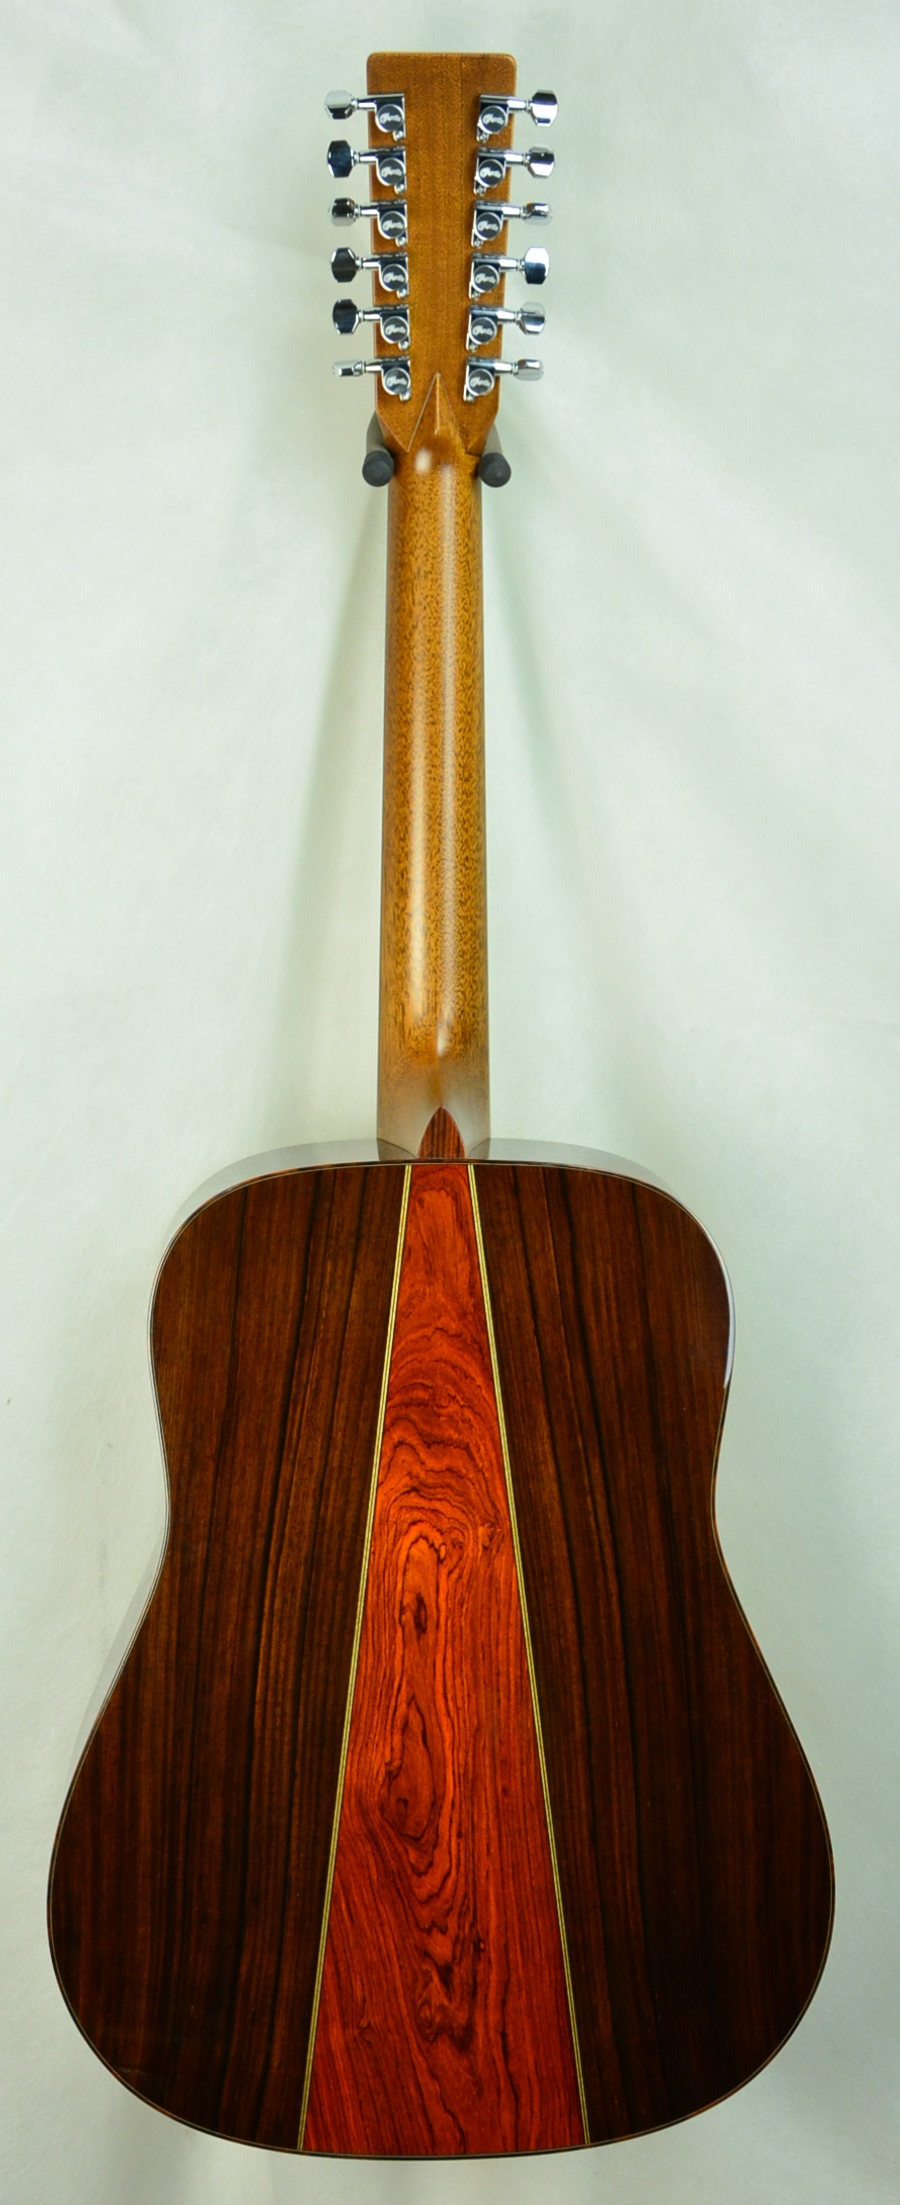 Q-2648424 S-1928831 D12-35 Guatemalan w-Cocobolo Wedge Sitka VTS (3).JPG